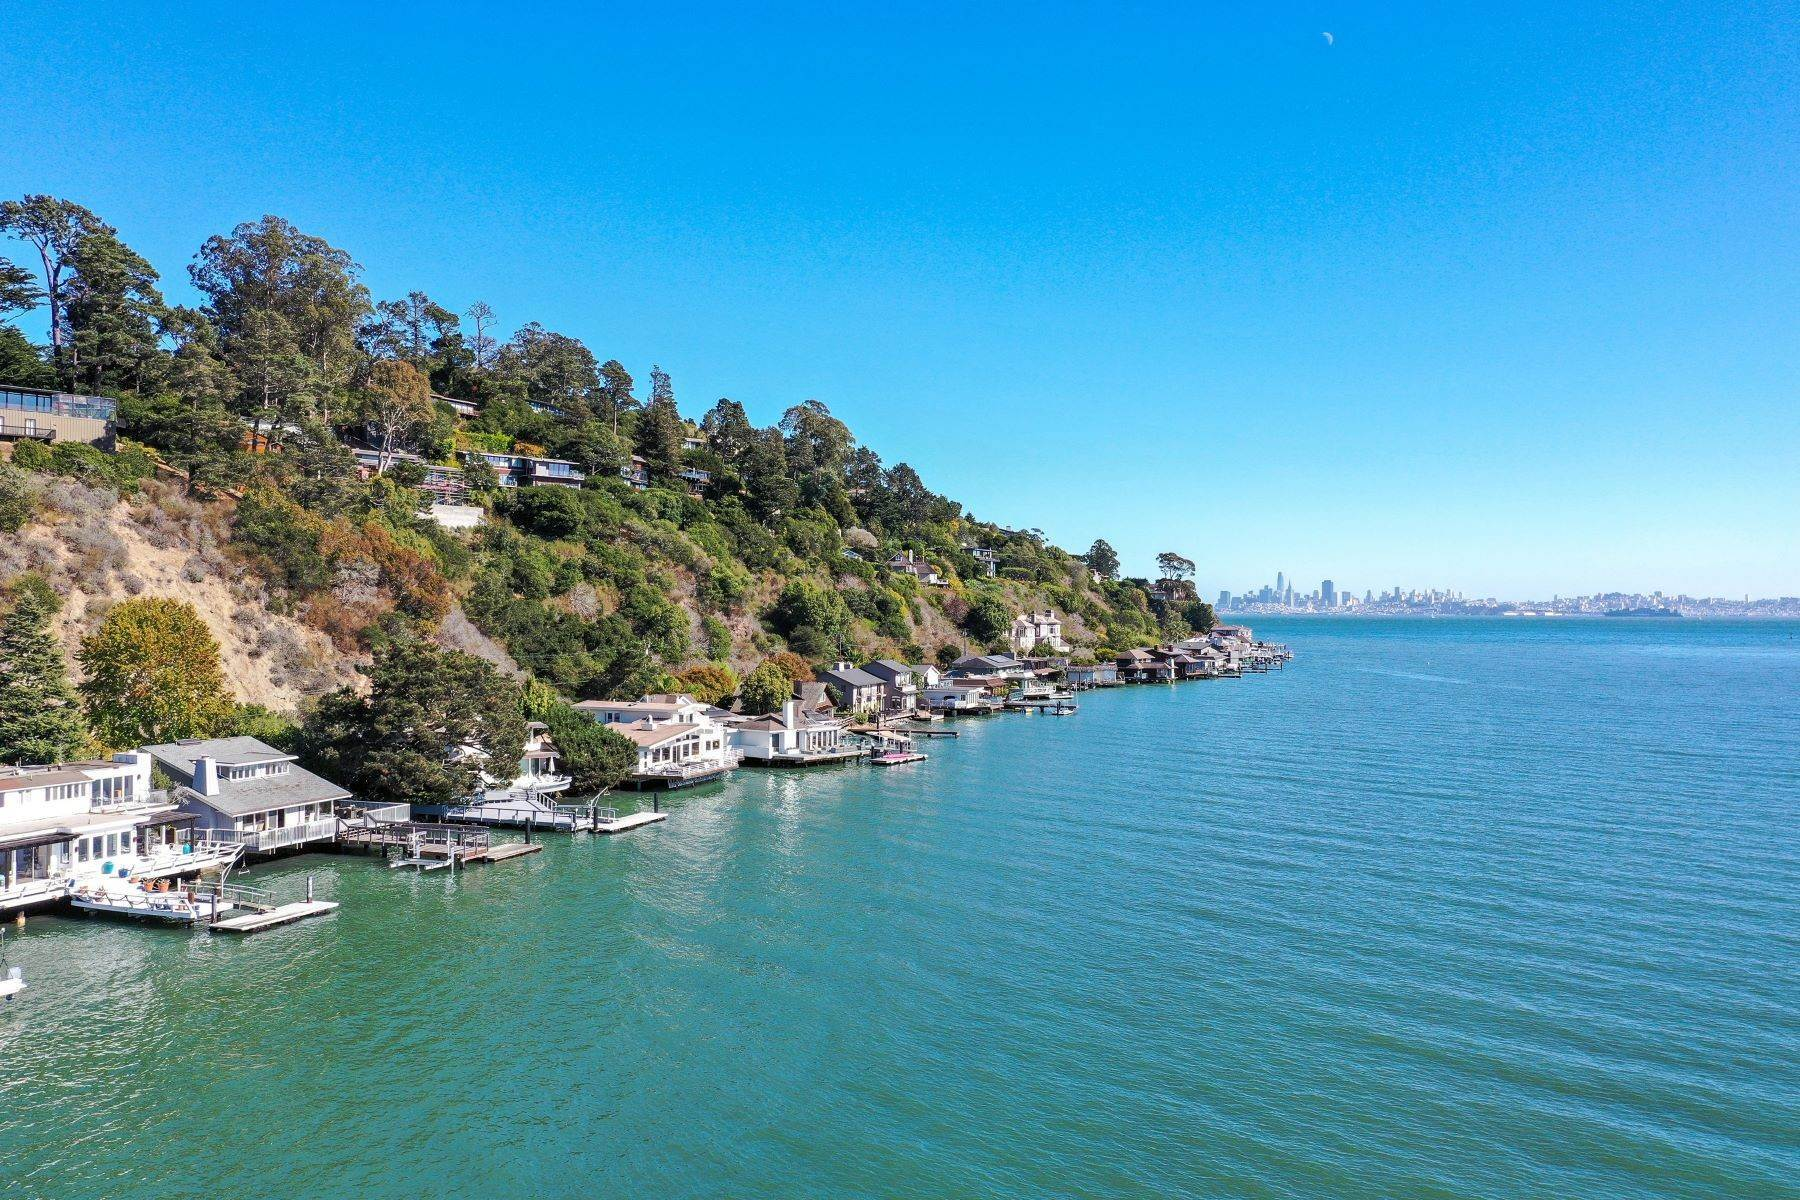 Property for Sale at Belvedere-West Shore Road 51 West Shore Road Belvedere, California 94920 United States